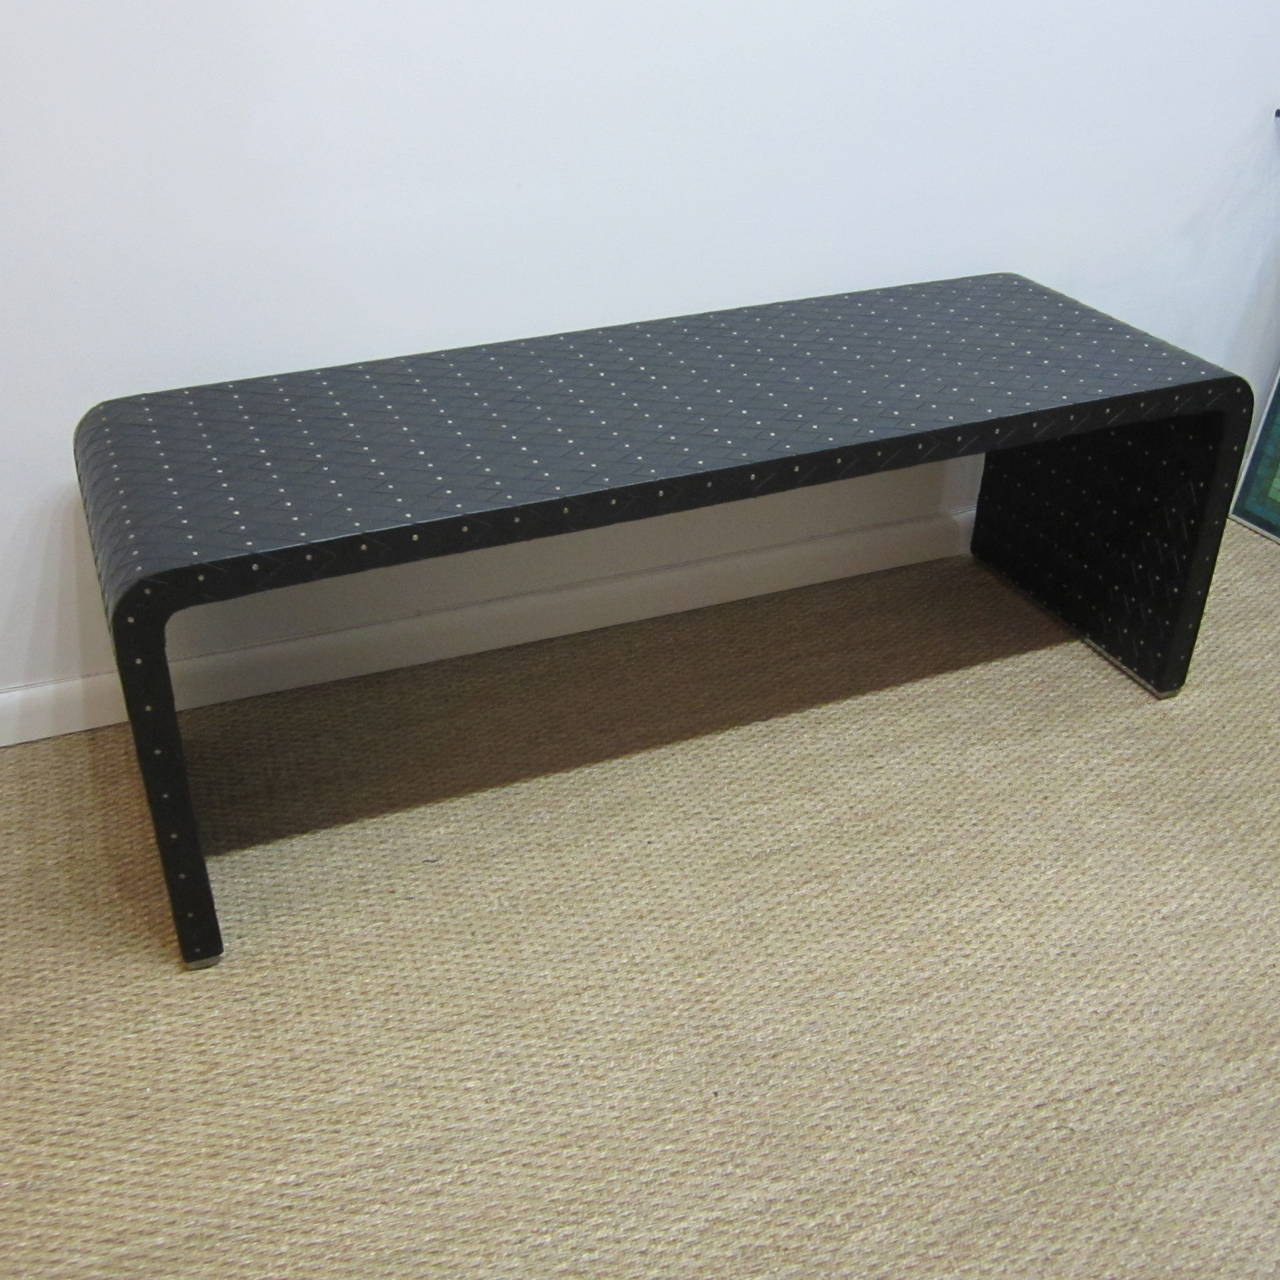 Woven Leather Studded Bench By Larry Laslo At 1stdibs